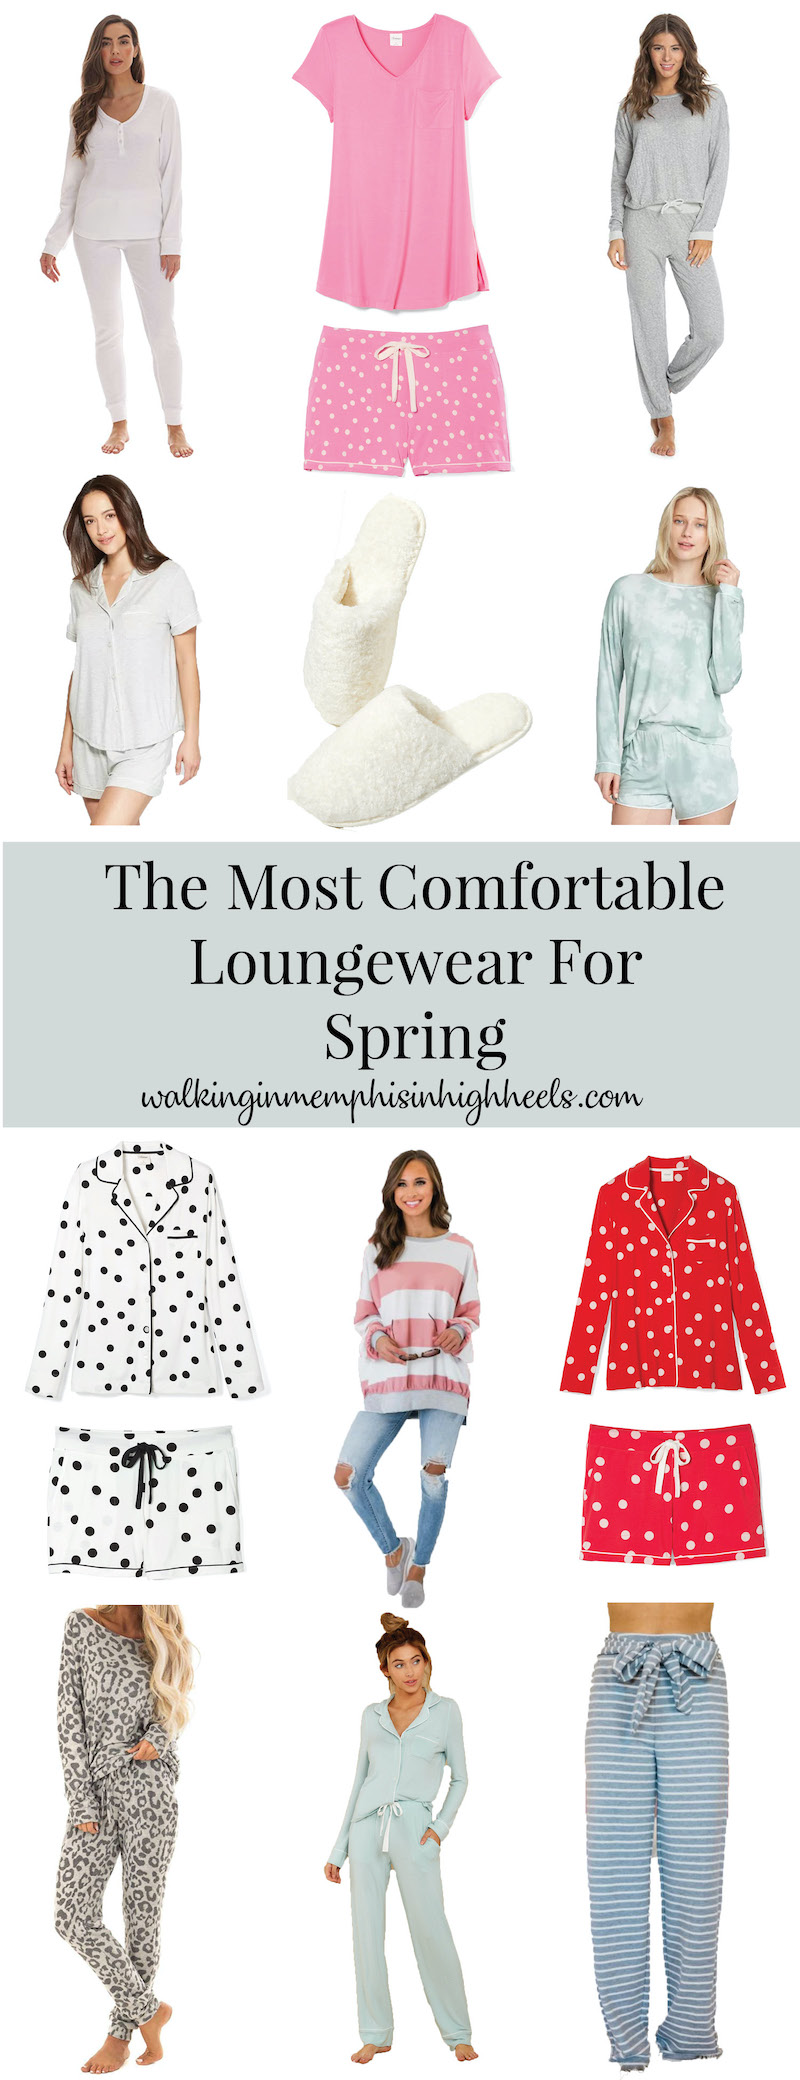 The Most Comfortable Loungewear for Spring